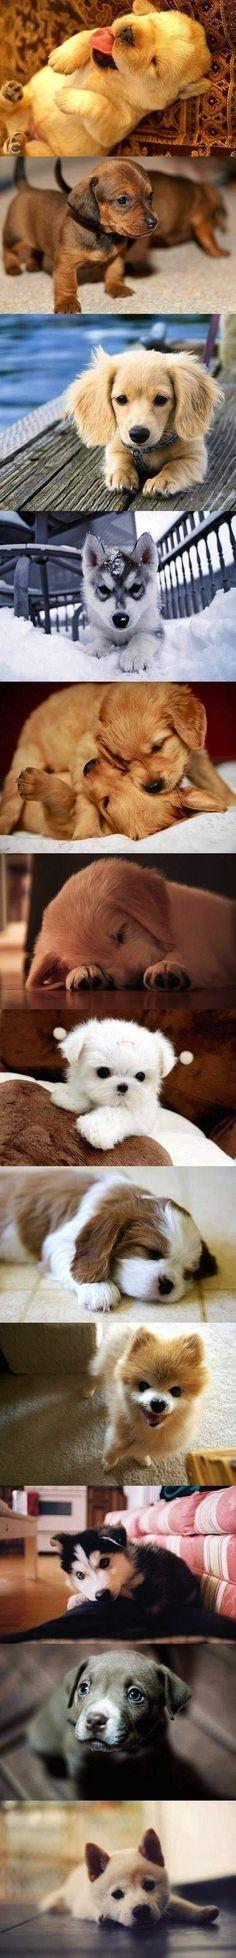 Community Post: 42 Puppies You'll Want To Take Home With You: Sweet, Puppies Dogs, Cutest Dogs, Animals Dogs, Puppys, Pupie, Pets Things, Animal I, Socute